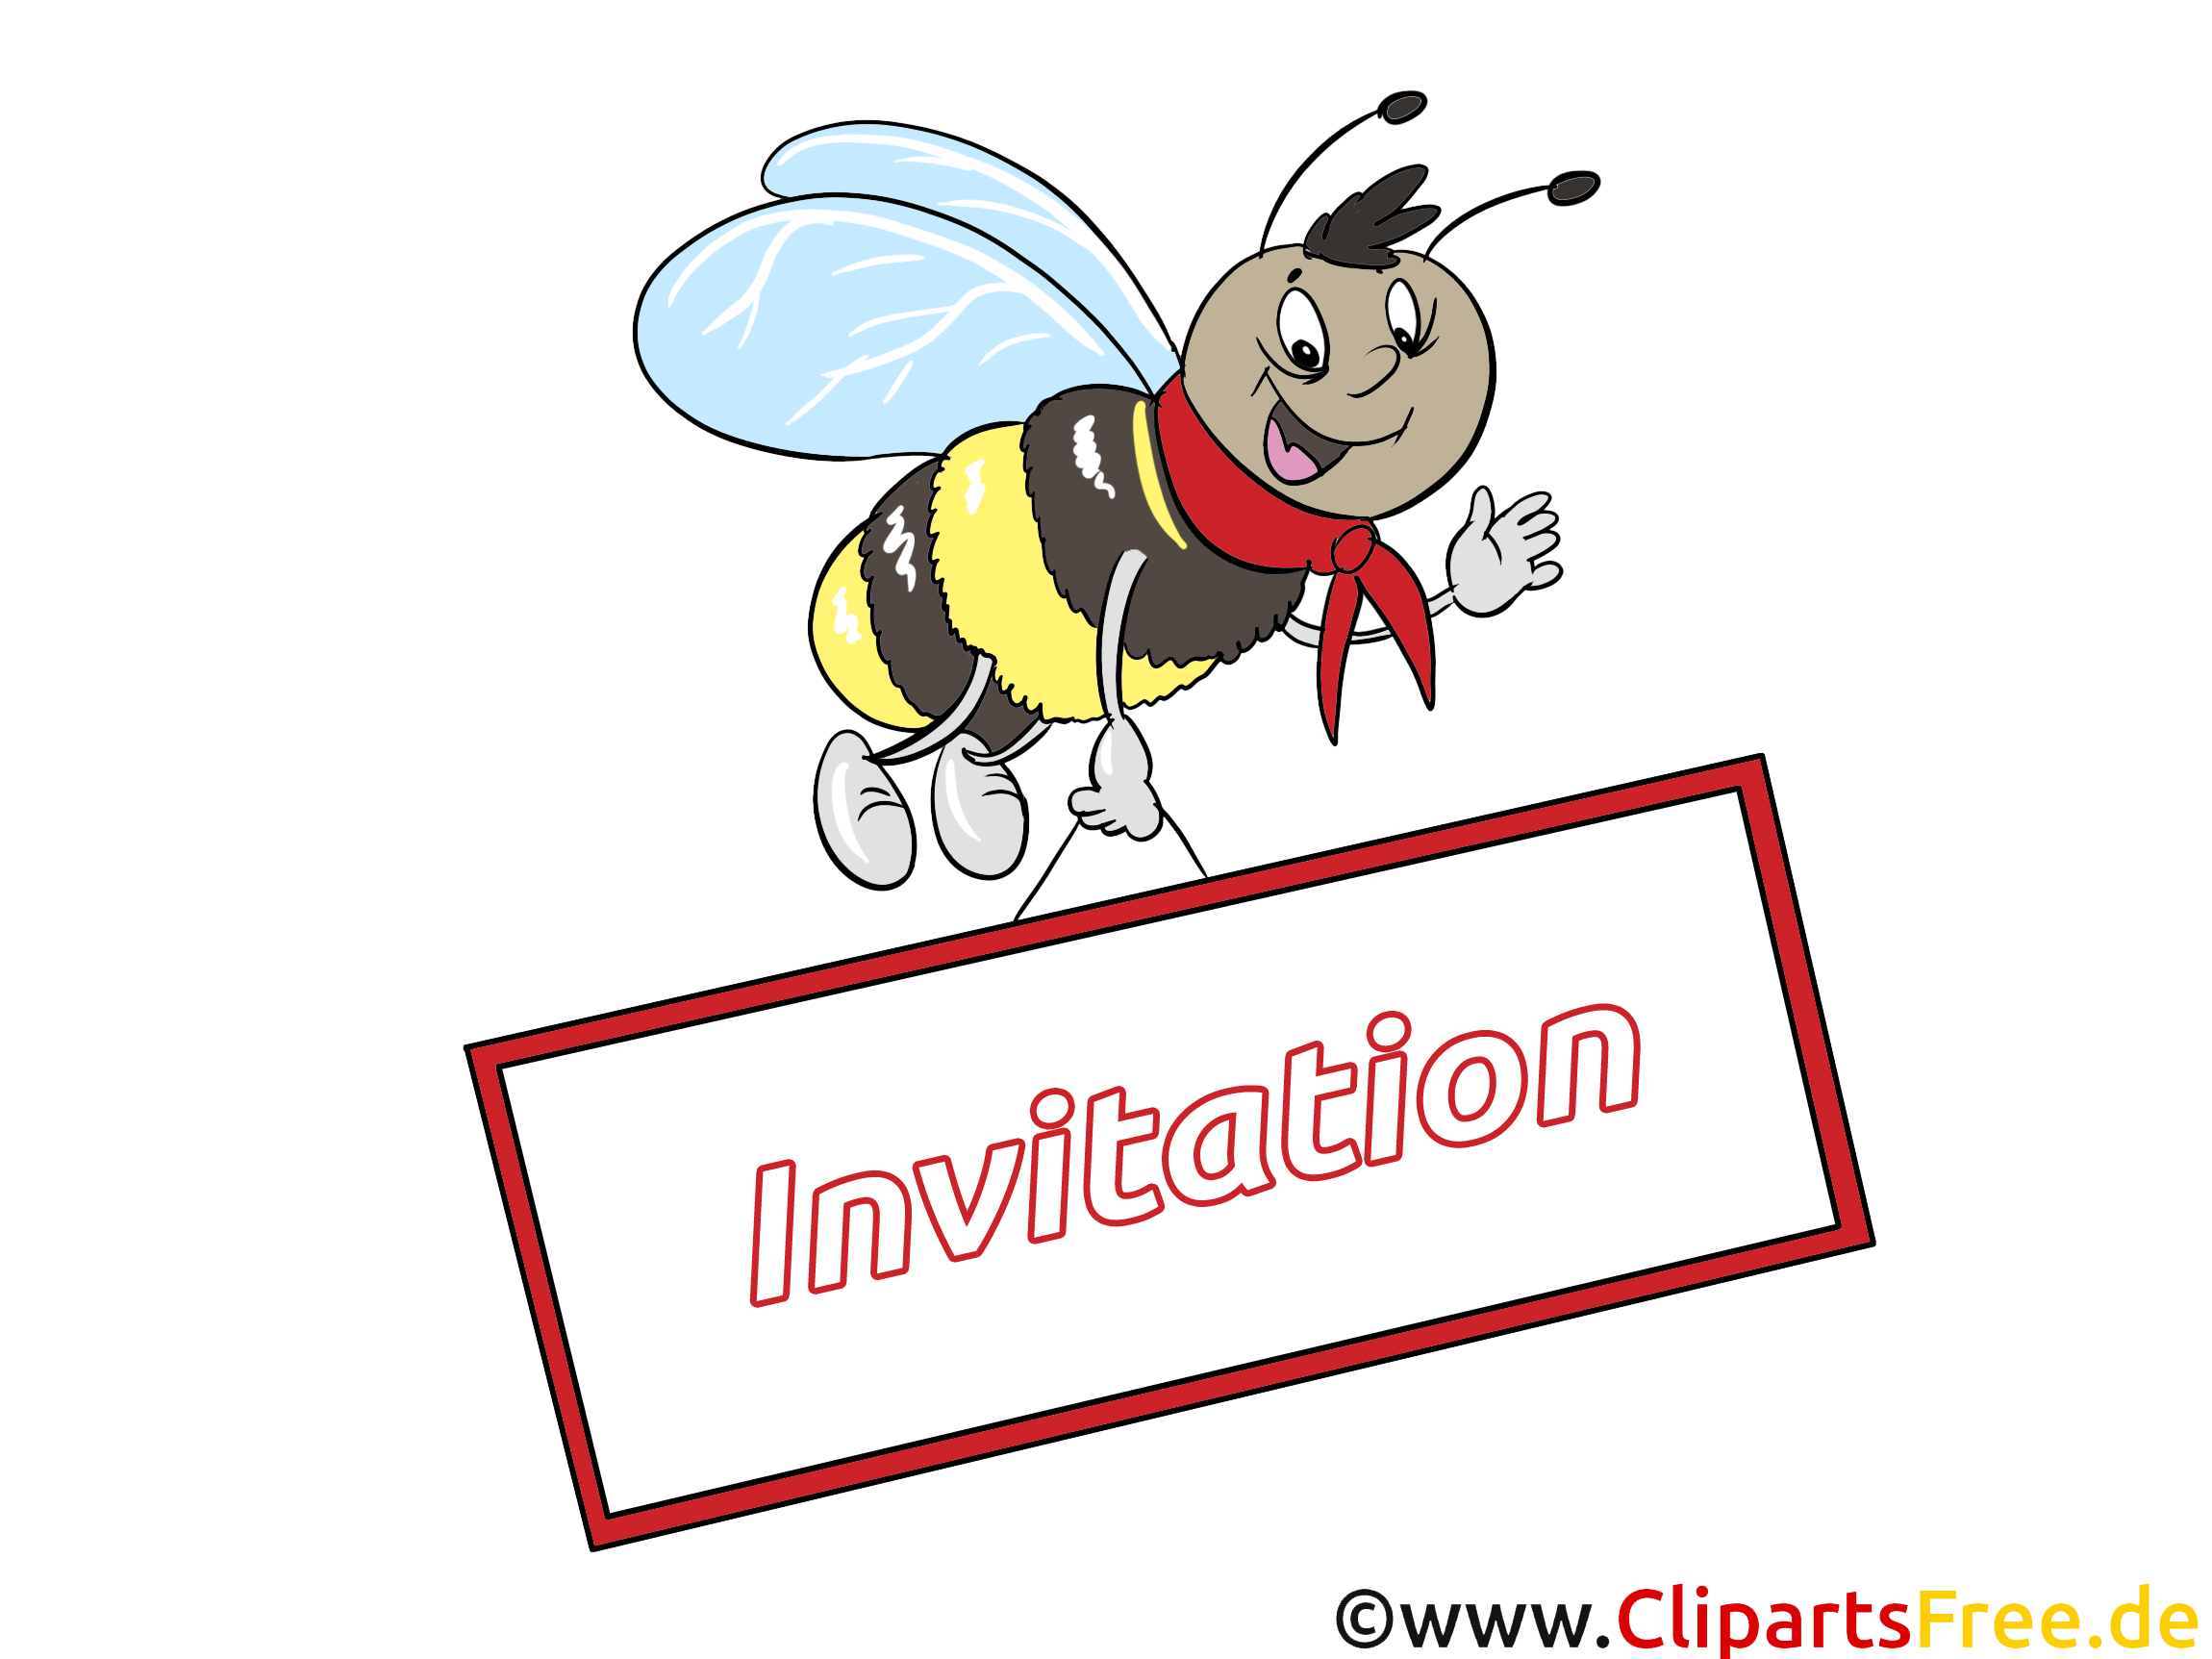 Abeille image - Invitation images cliparts